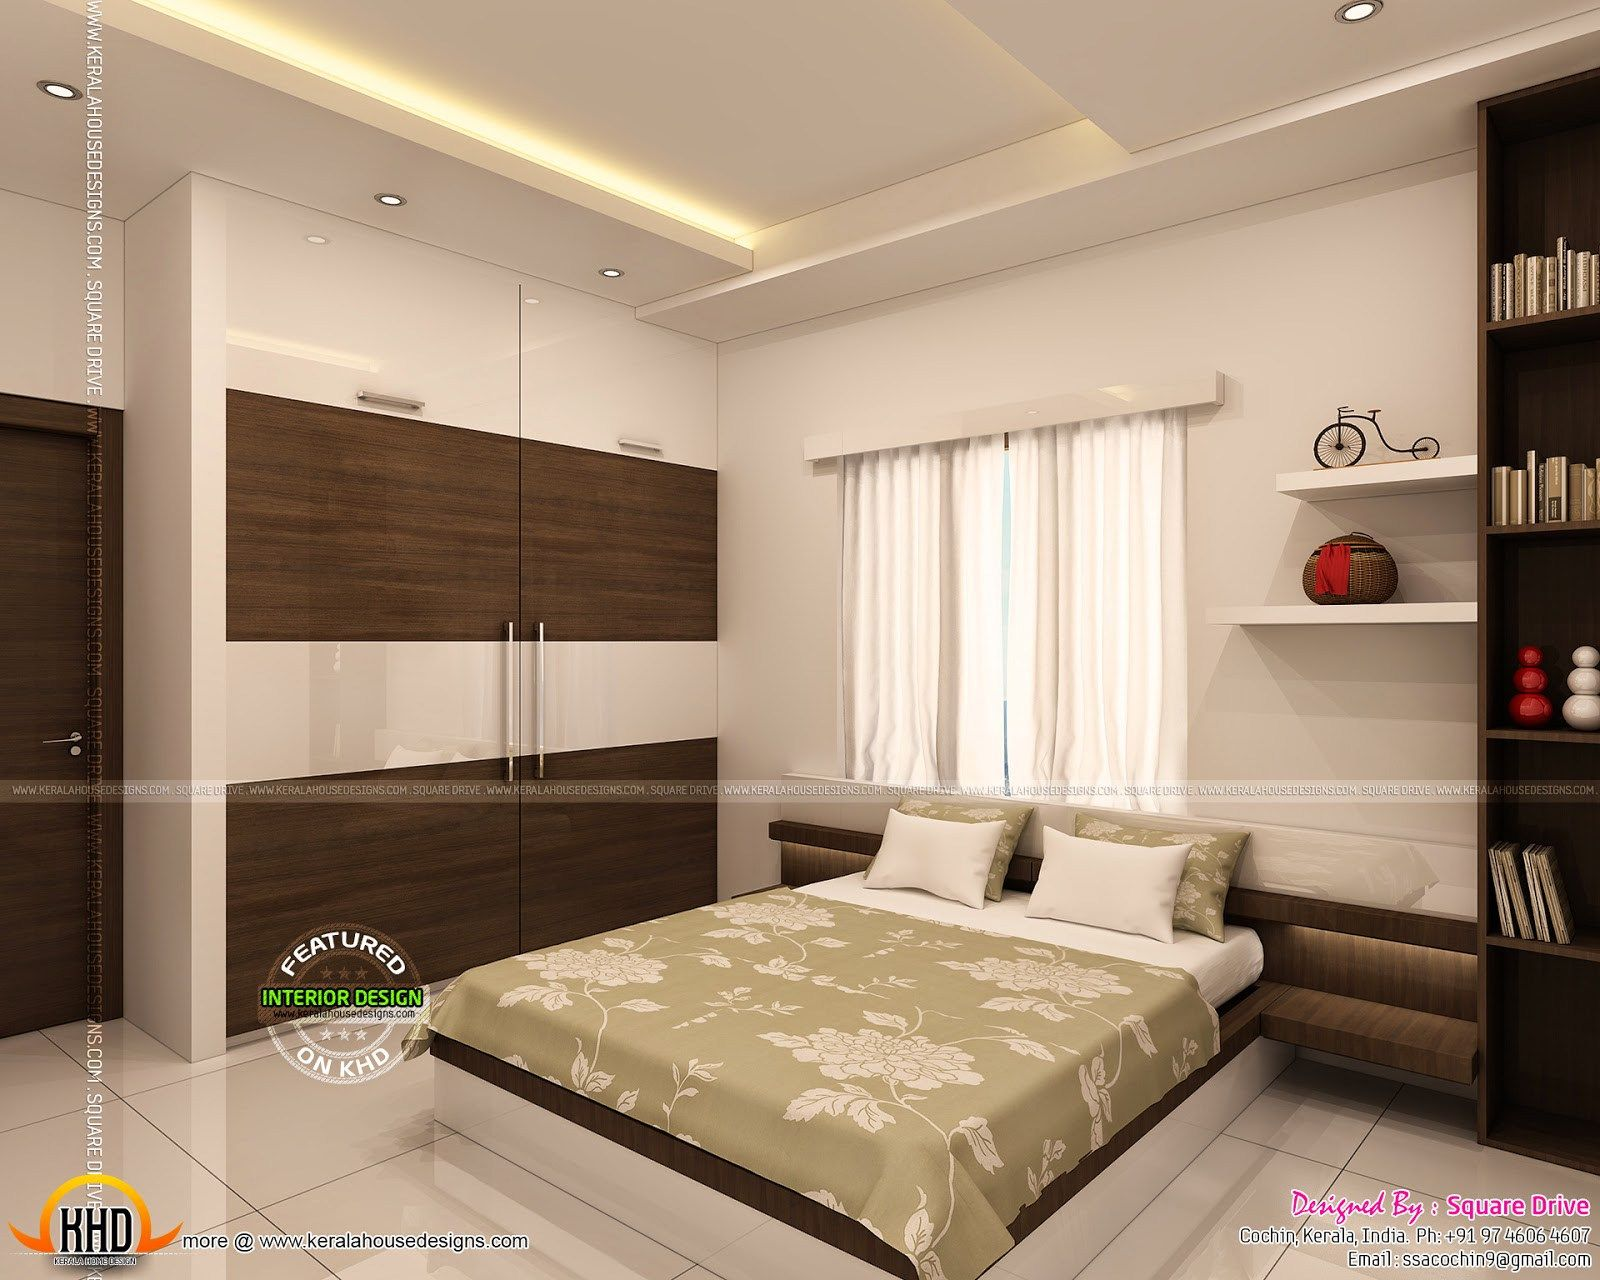 Trendy Bedroom Interior Designs Kerala Home Design Floor Plans Container  Home Floor Plans Kerala Home Design